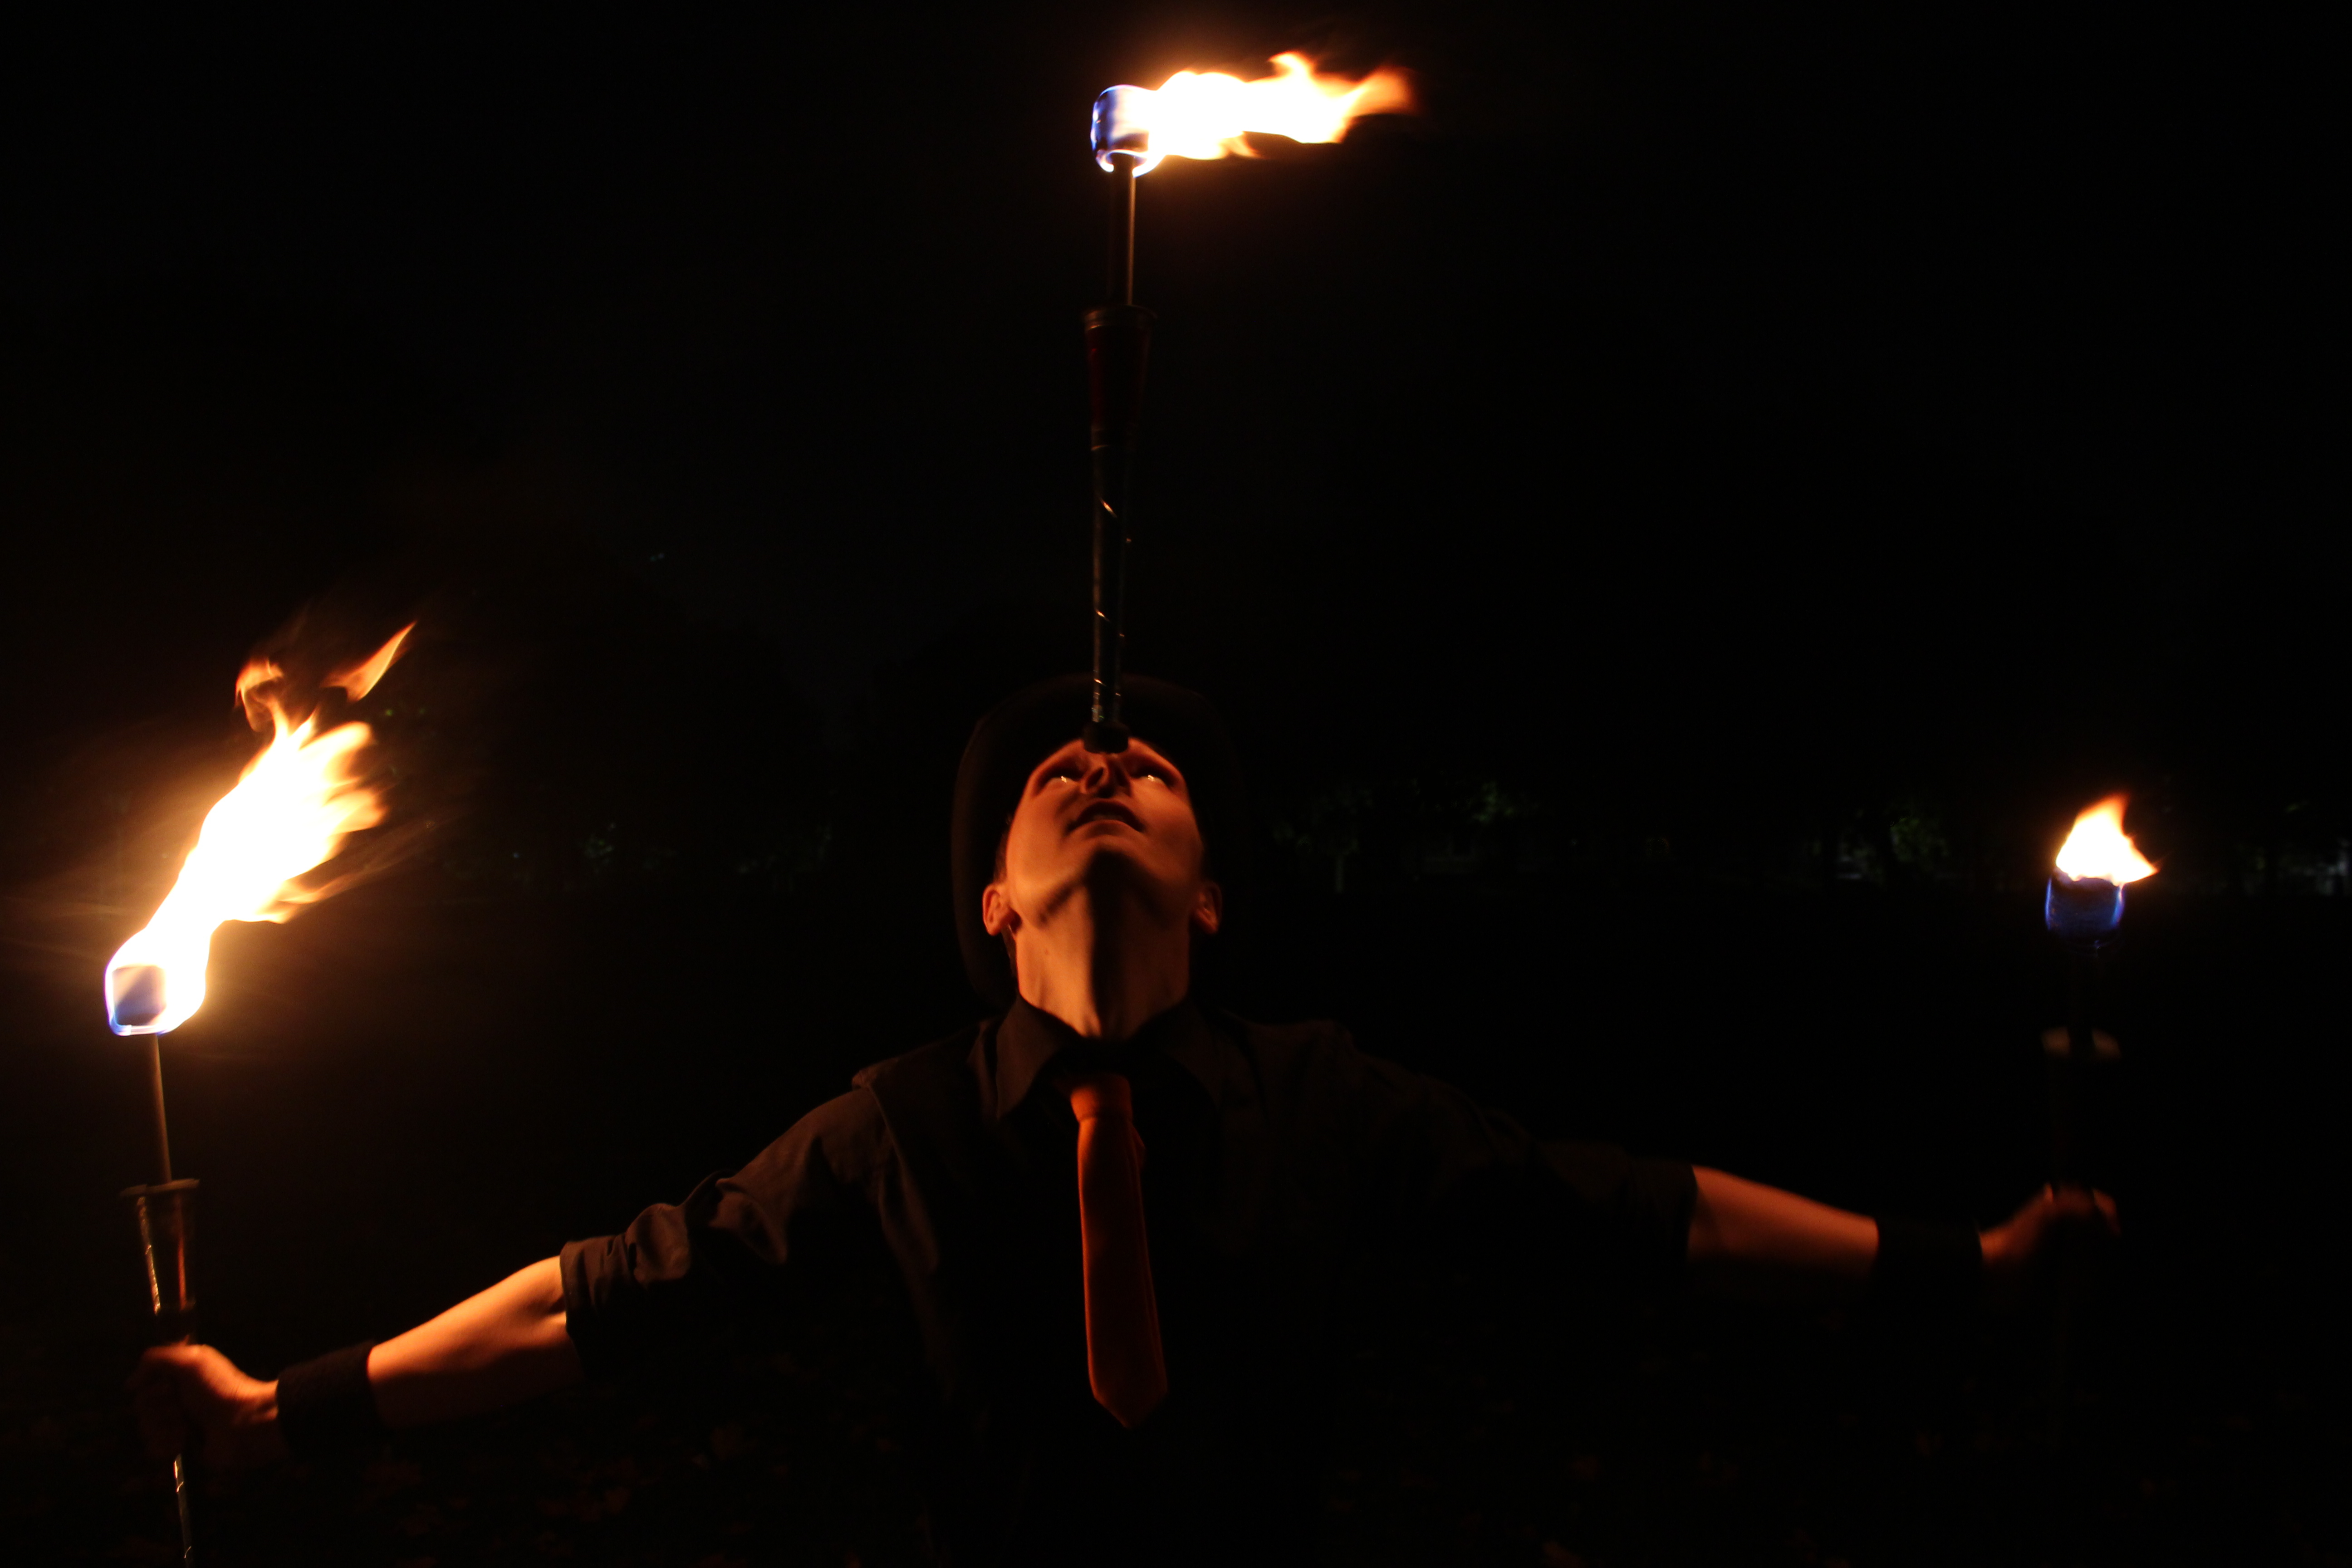 Fire juggling, Fire performers, Ben and Fred, jugglingben